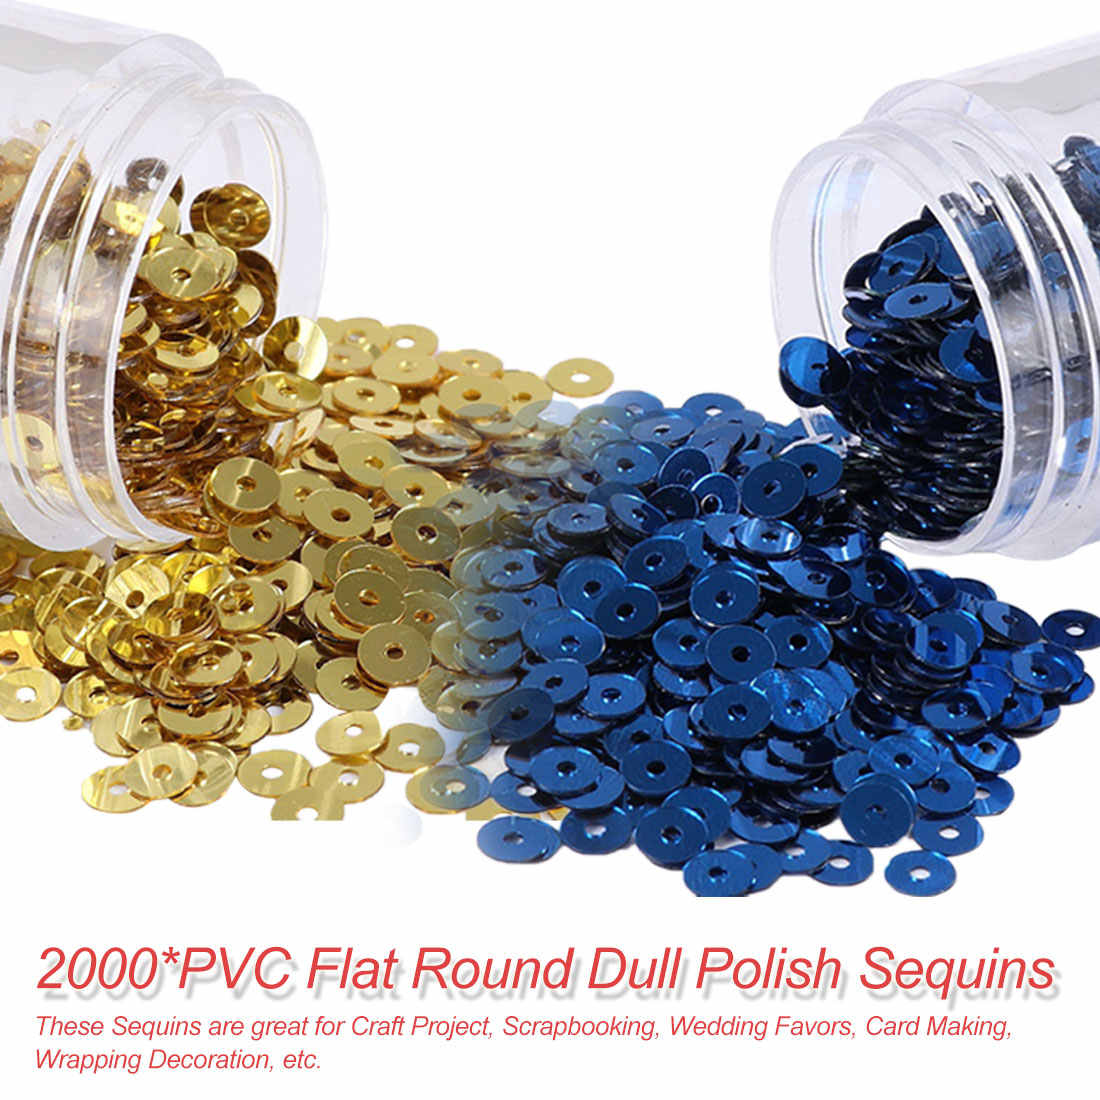 Women Garments Accessories 2000Pcs(10g) 4mm Matting Sequin PVC Flat Round Dull Polish Sequins Paillettes Sewing Wedding Craft